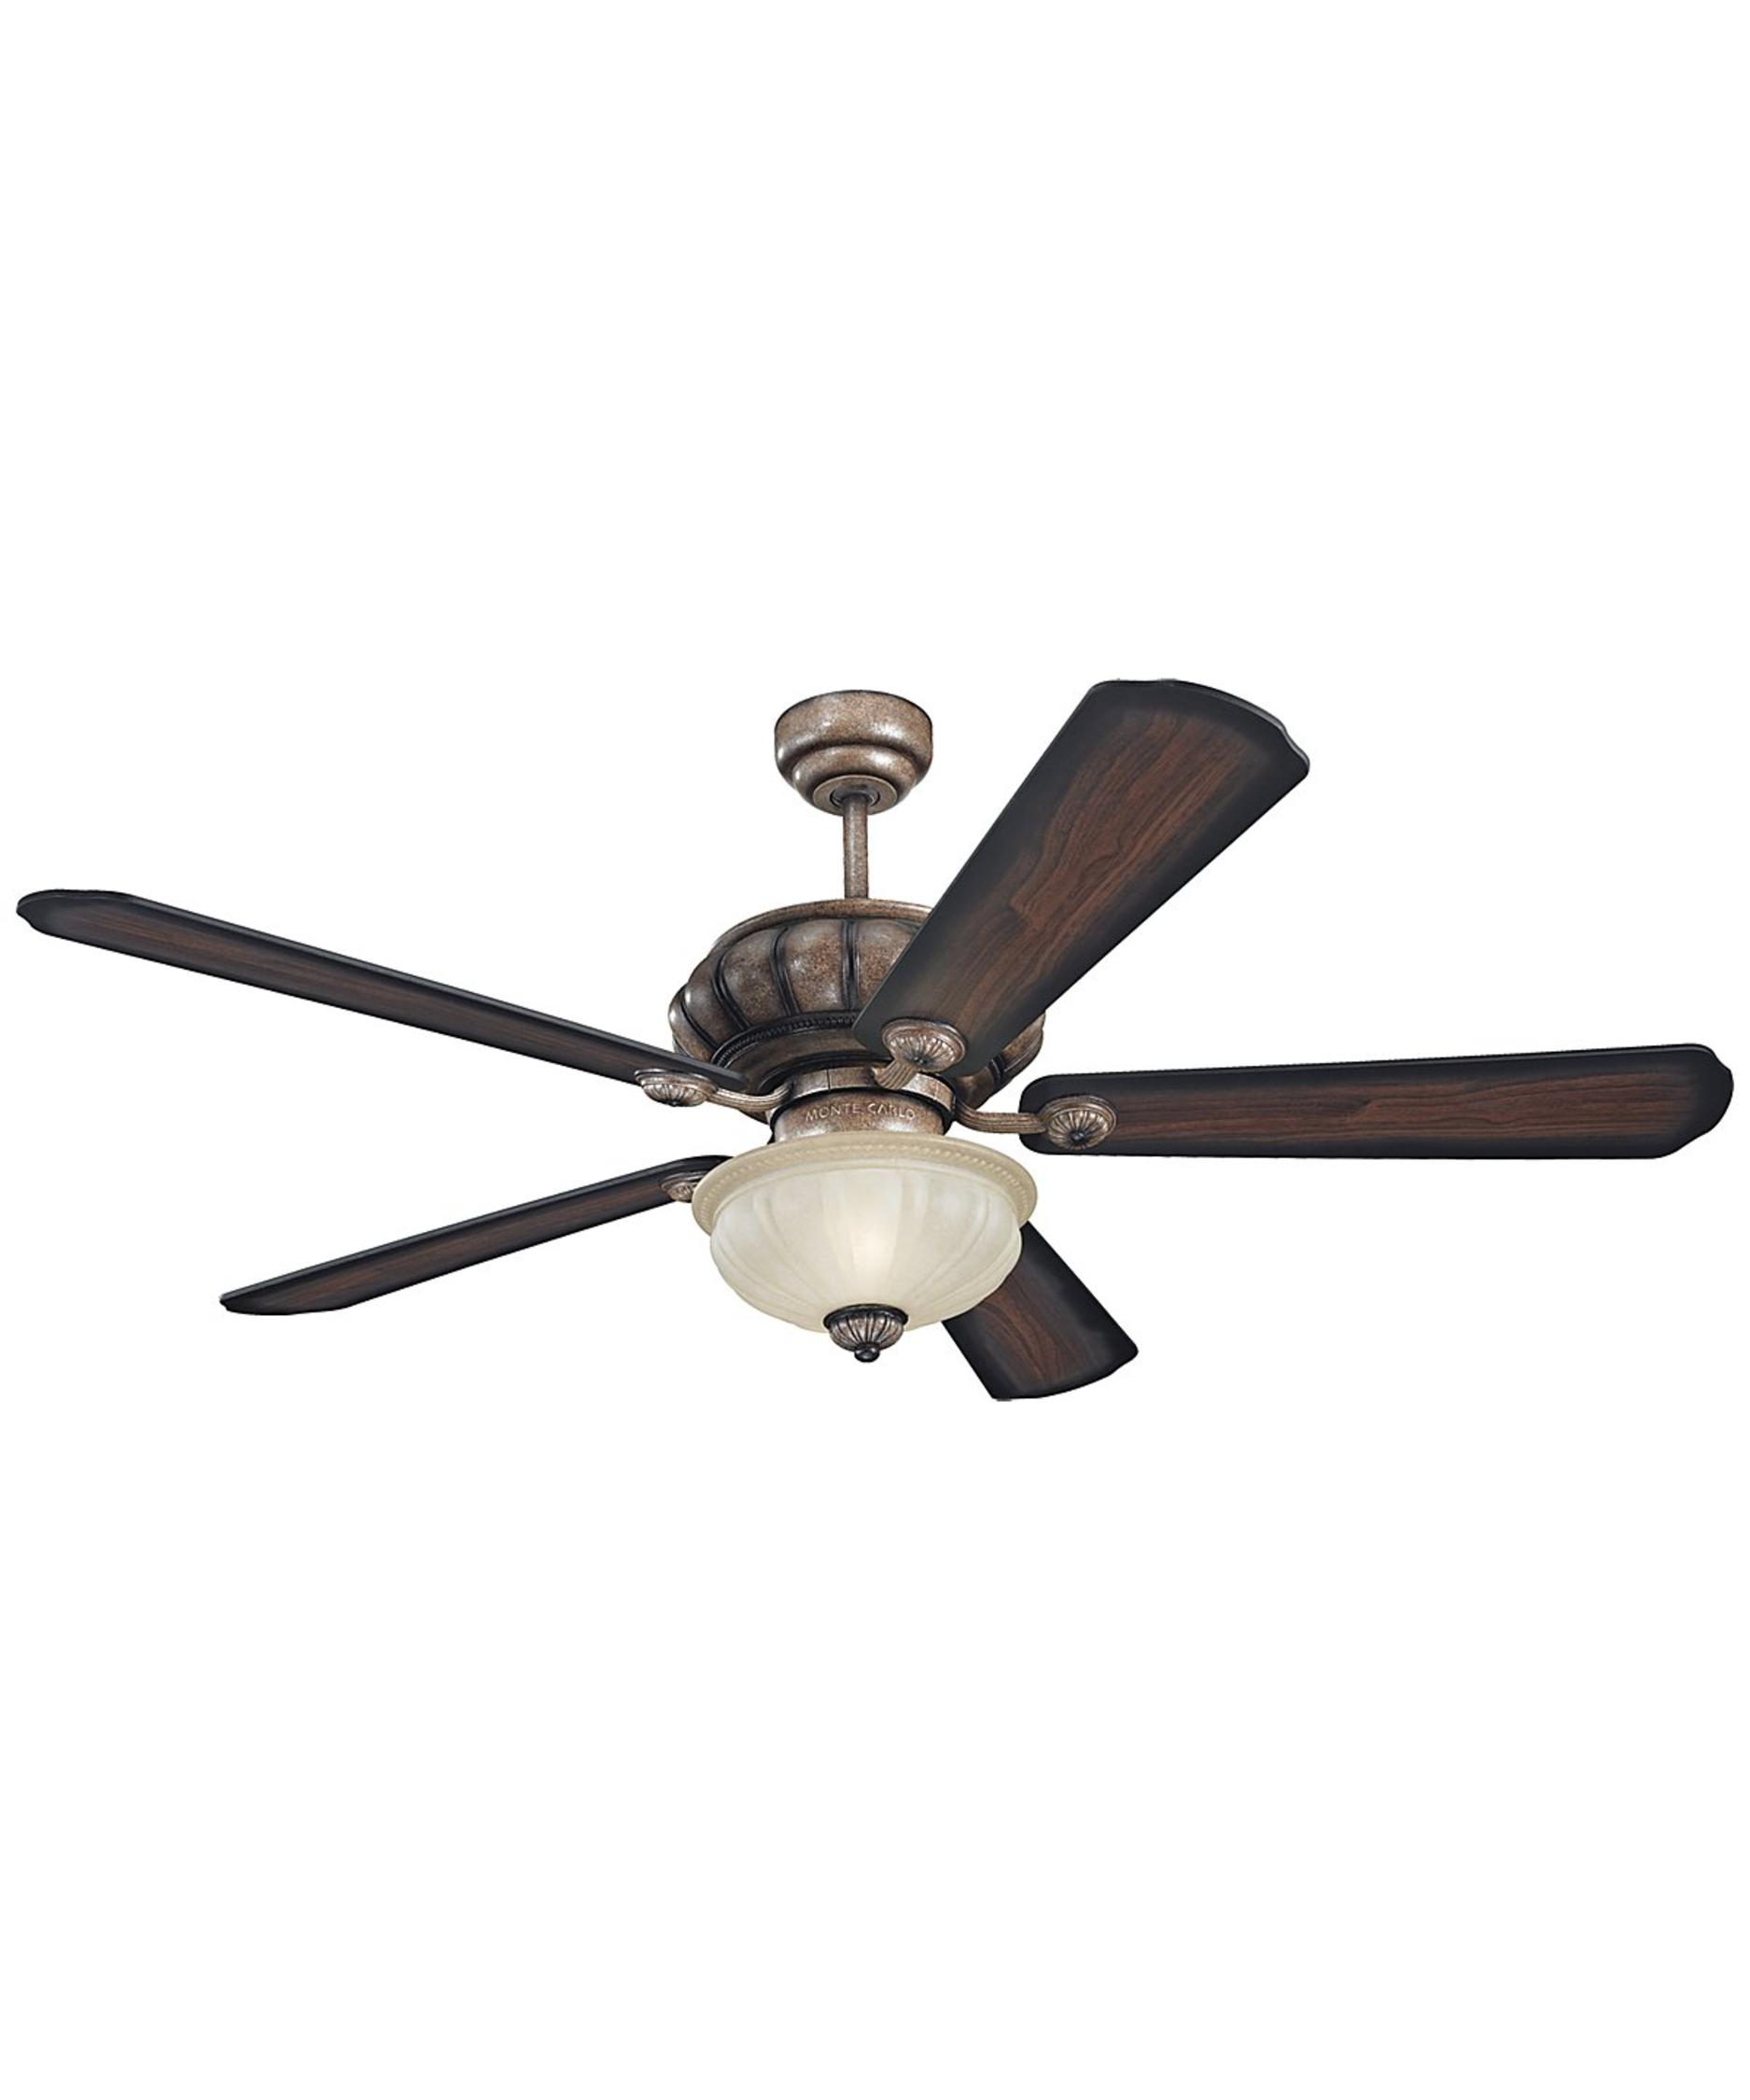 Murray Feiss Ceiling Fan Light Kit: Monte Carlo 5MGR54 Matise 54 Inch Ceiling Fan With Light